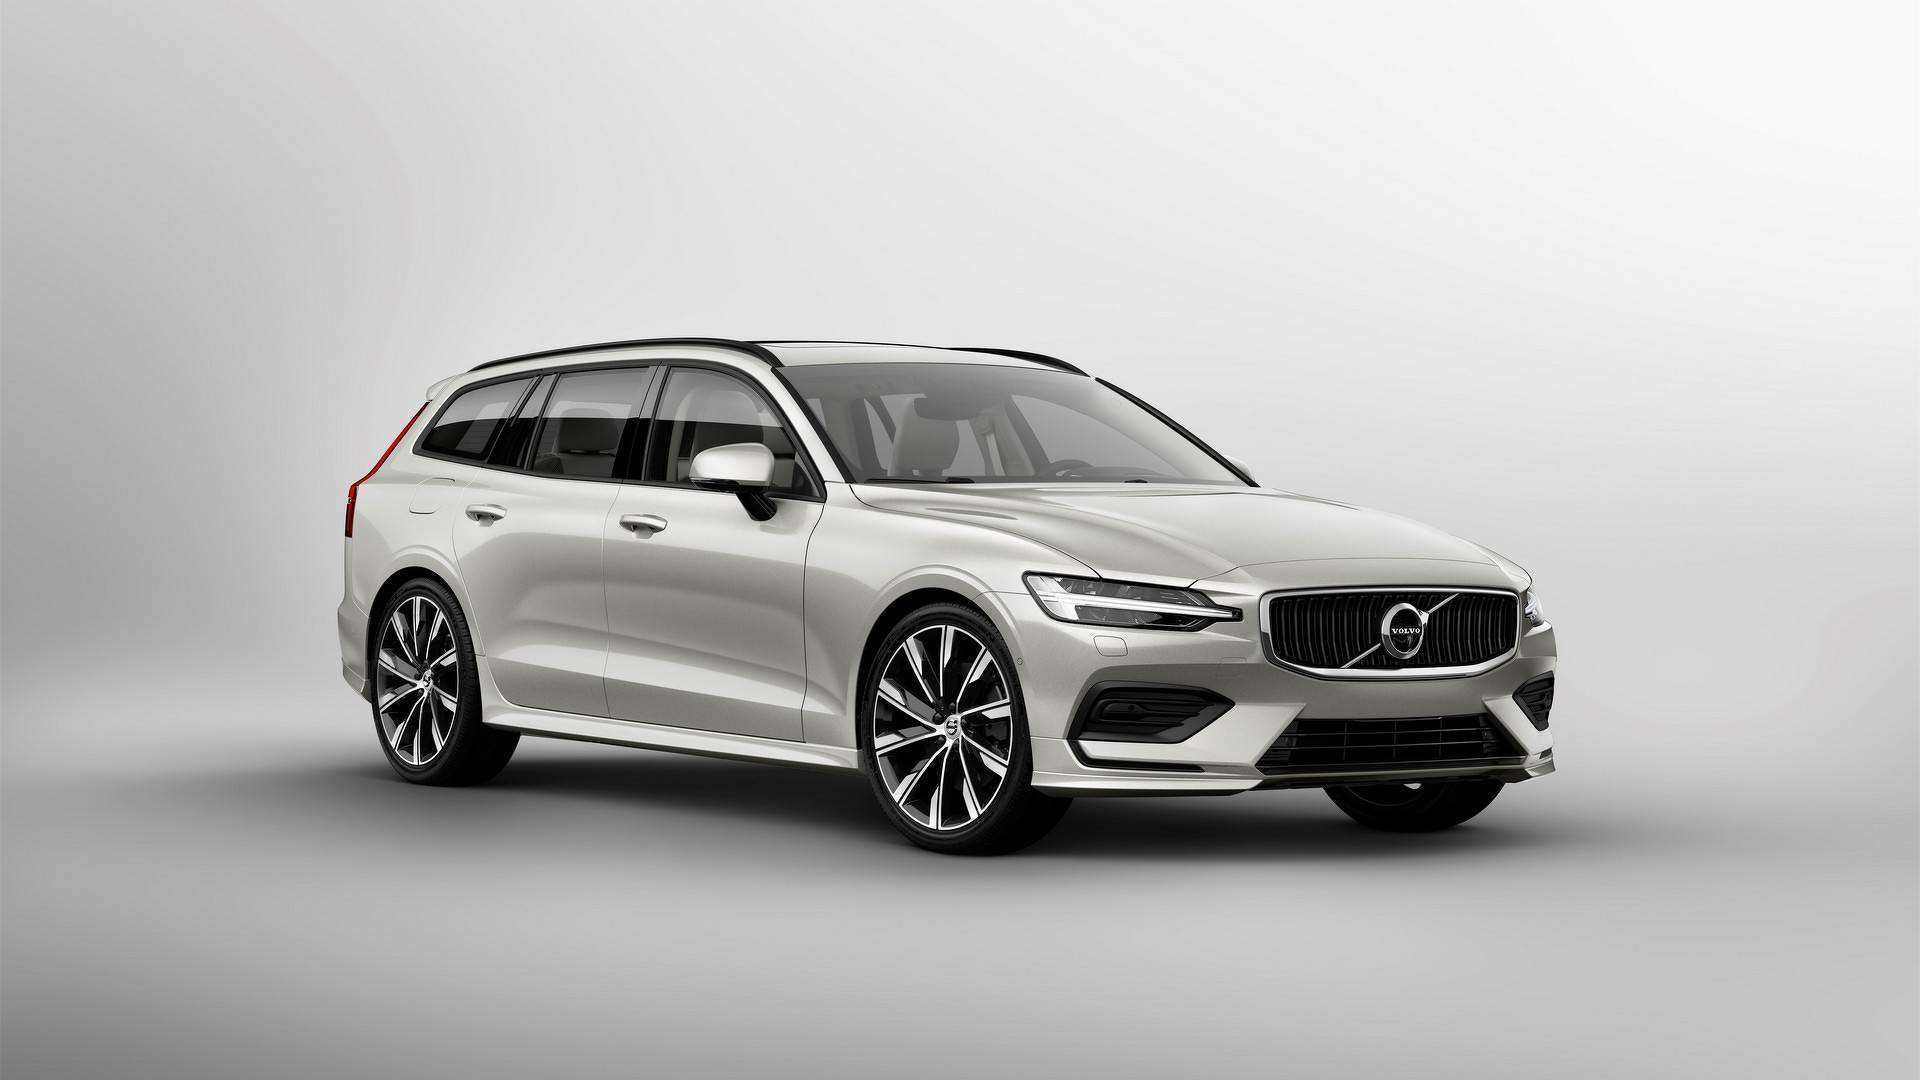 11 All New Volvo V60 2019 Dimensions Spy Shoot by Volvo V60 2019 Dimensions